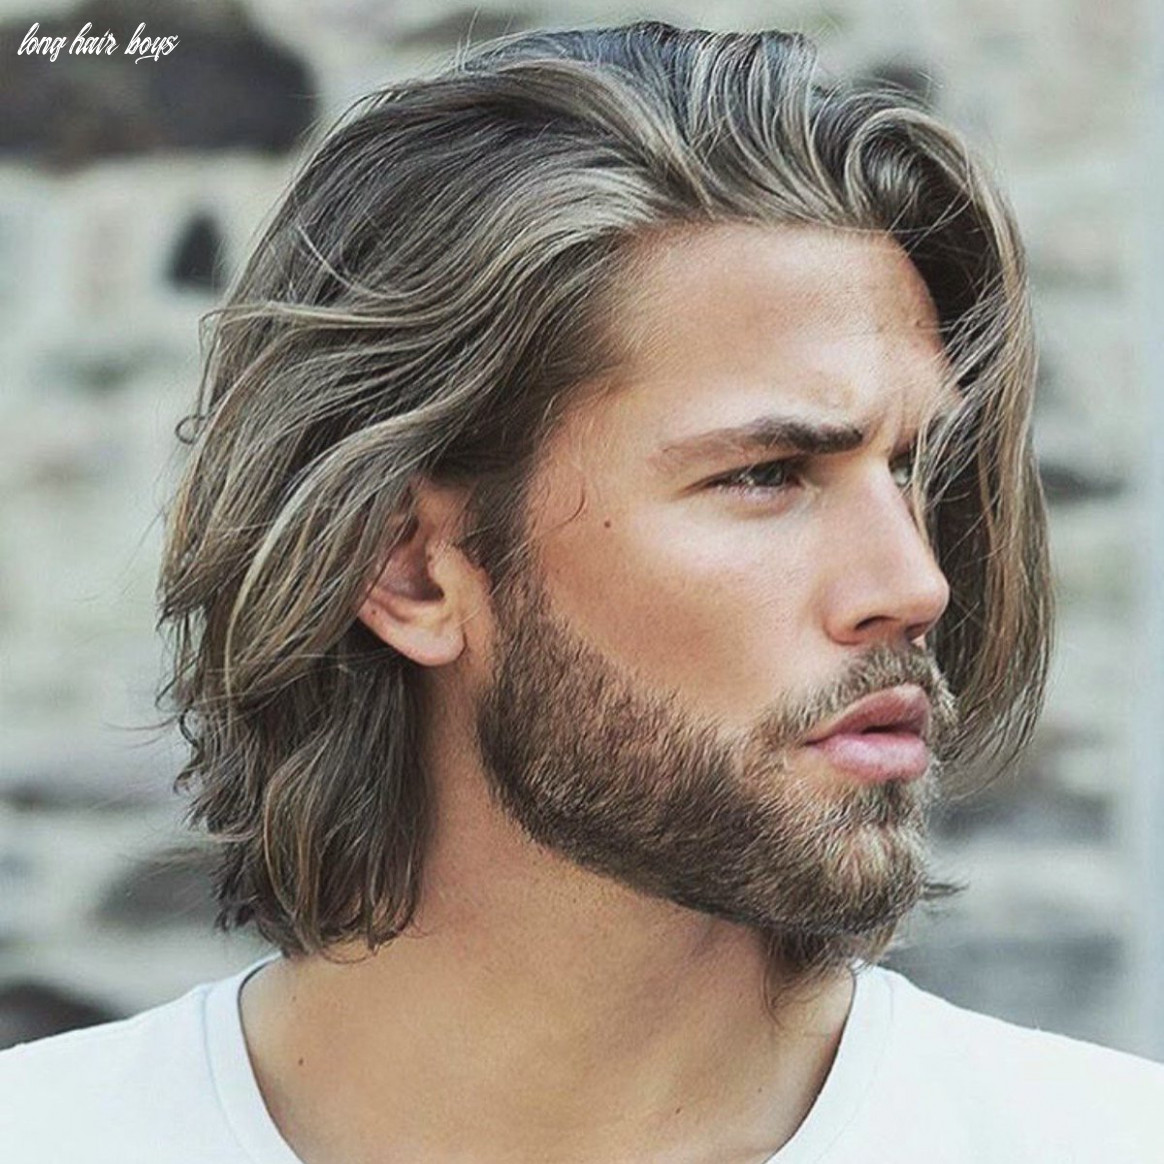 8 ultra stylish long hairstyles for boys haircuts & hairstyles 8 long hair boys